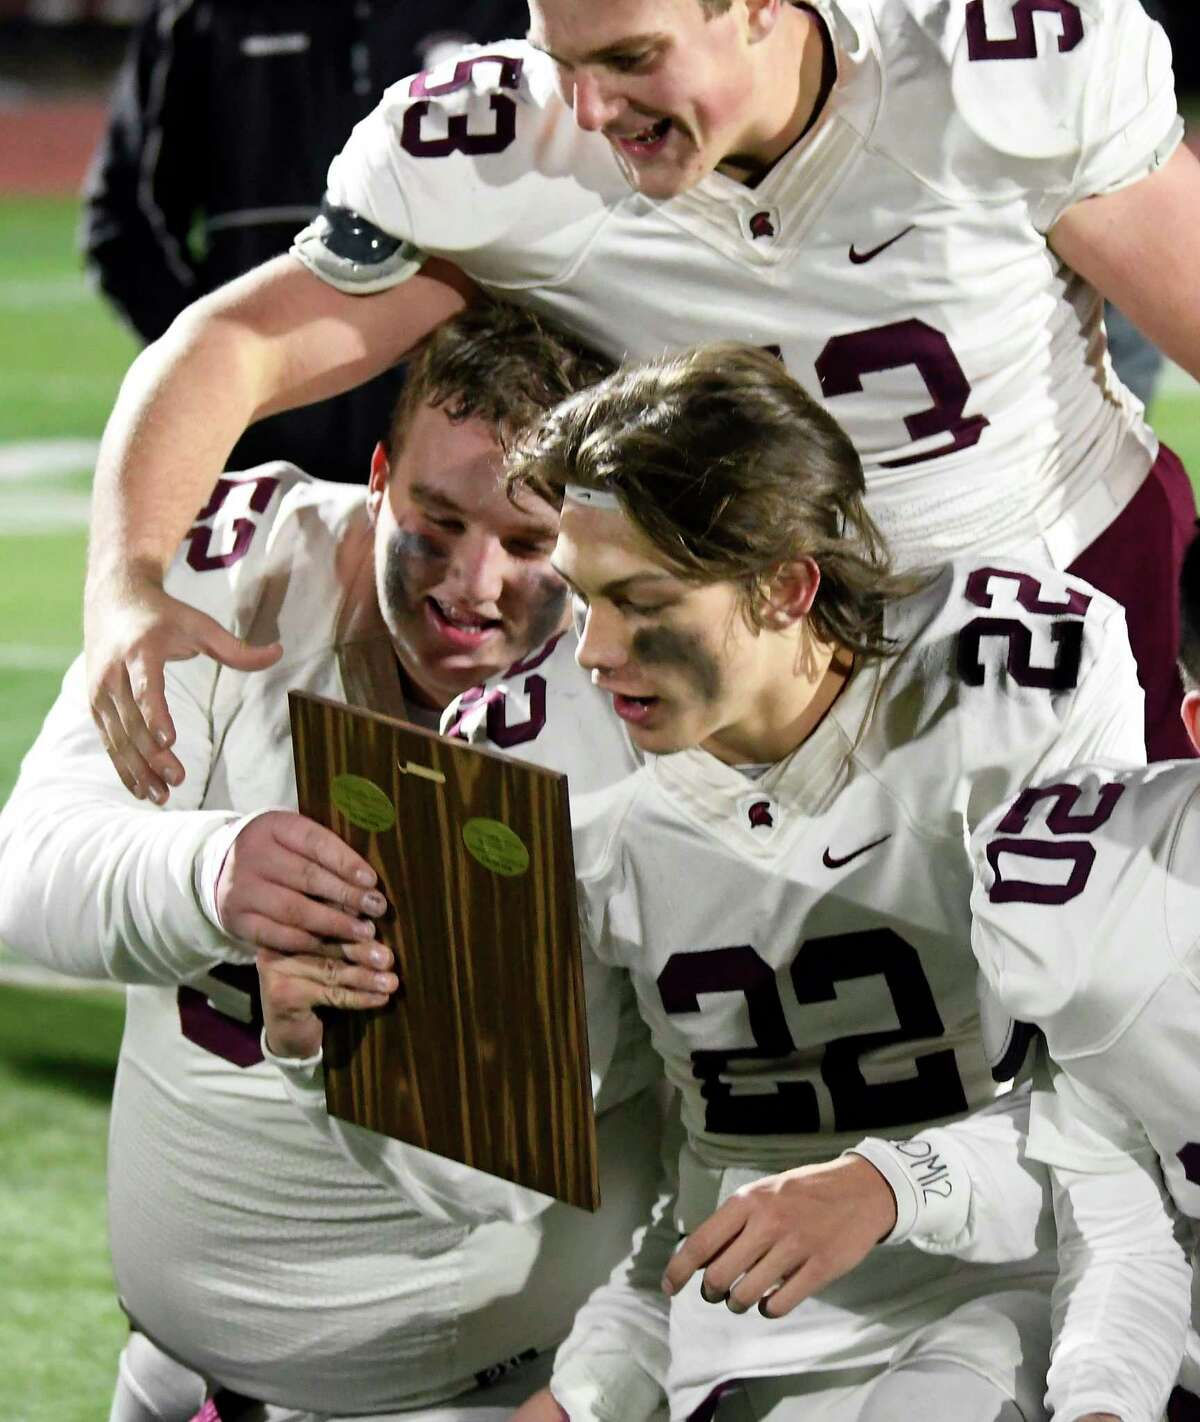 Burnt Hills-Ballston Lake players celebrate a 21-16 win against Queensbury during a Section II Class A High School Super Bowl football game Saturday, Nov. 3, 2018, in Clifton Park, N.Y. (Hans Pennink / Special to the Times Union)